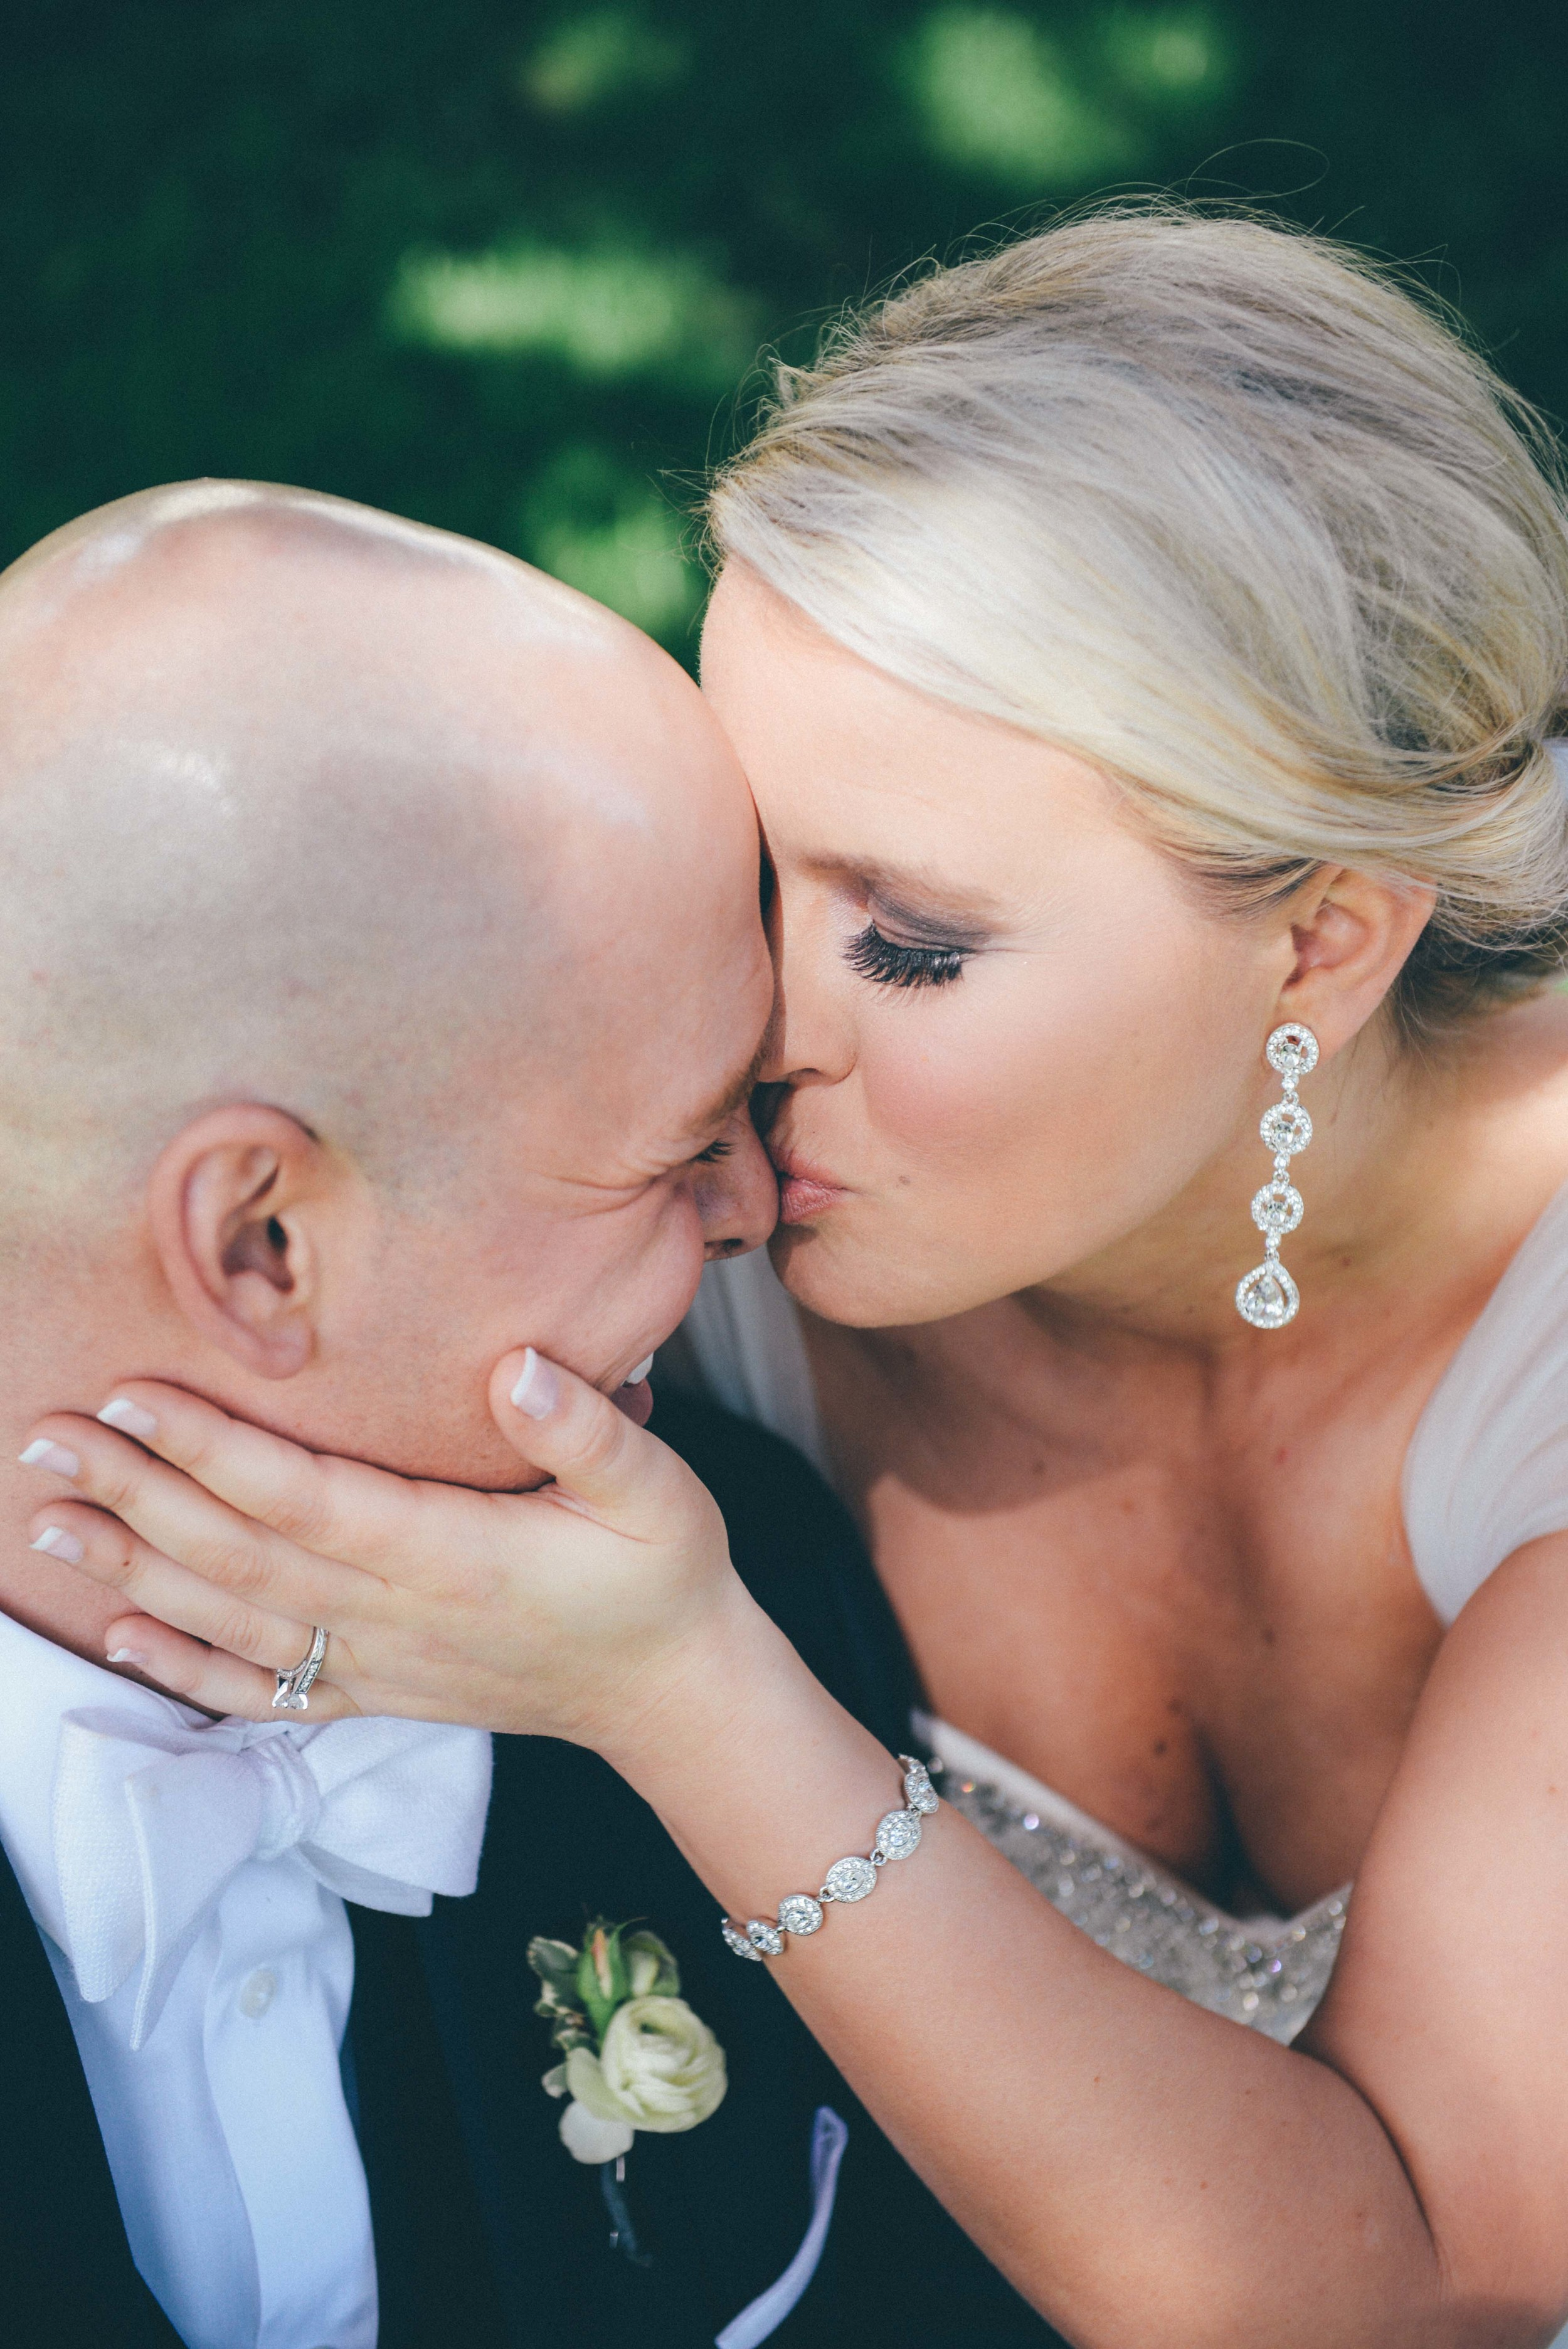 bride and groom kissing smiling hand on face